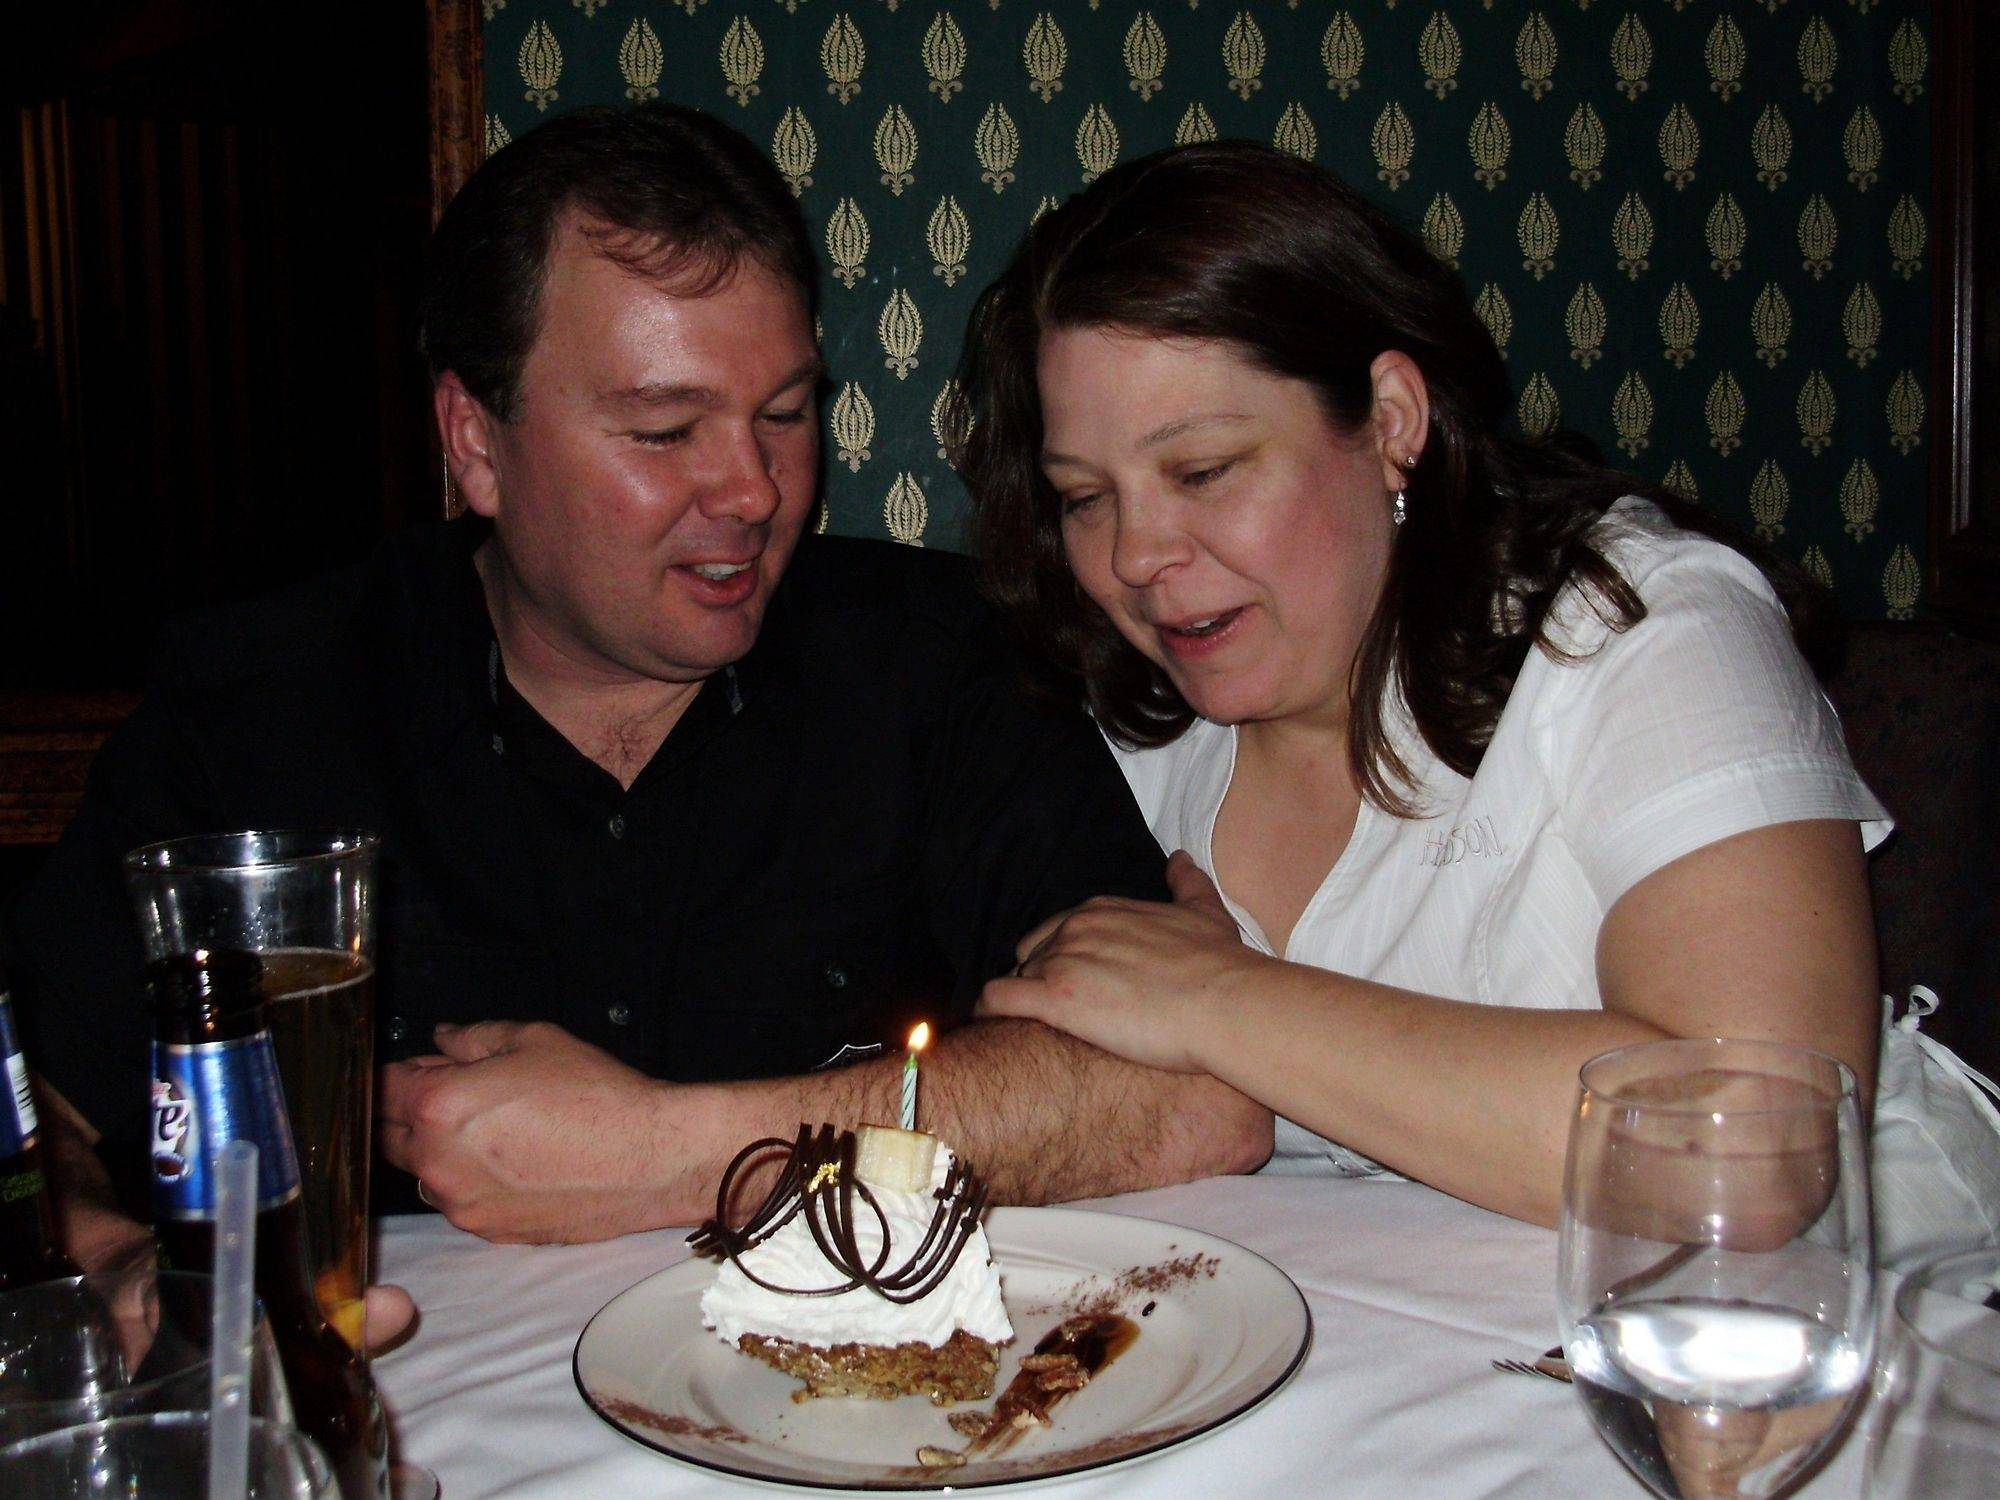 Wade and Denise Thomas of St. Charles were killed in a motorcycle crash May 23, 2009, near Elburn. The couple was married on March 18, 2008, and are shown here celebrating their first wedding anniversary.